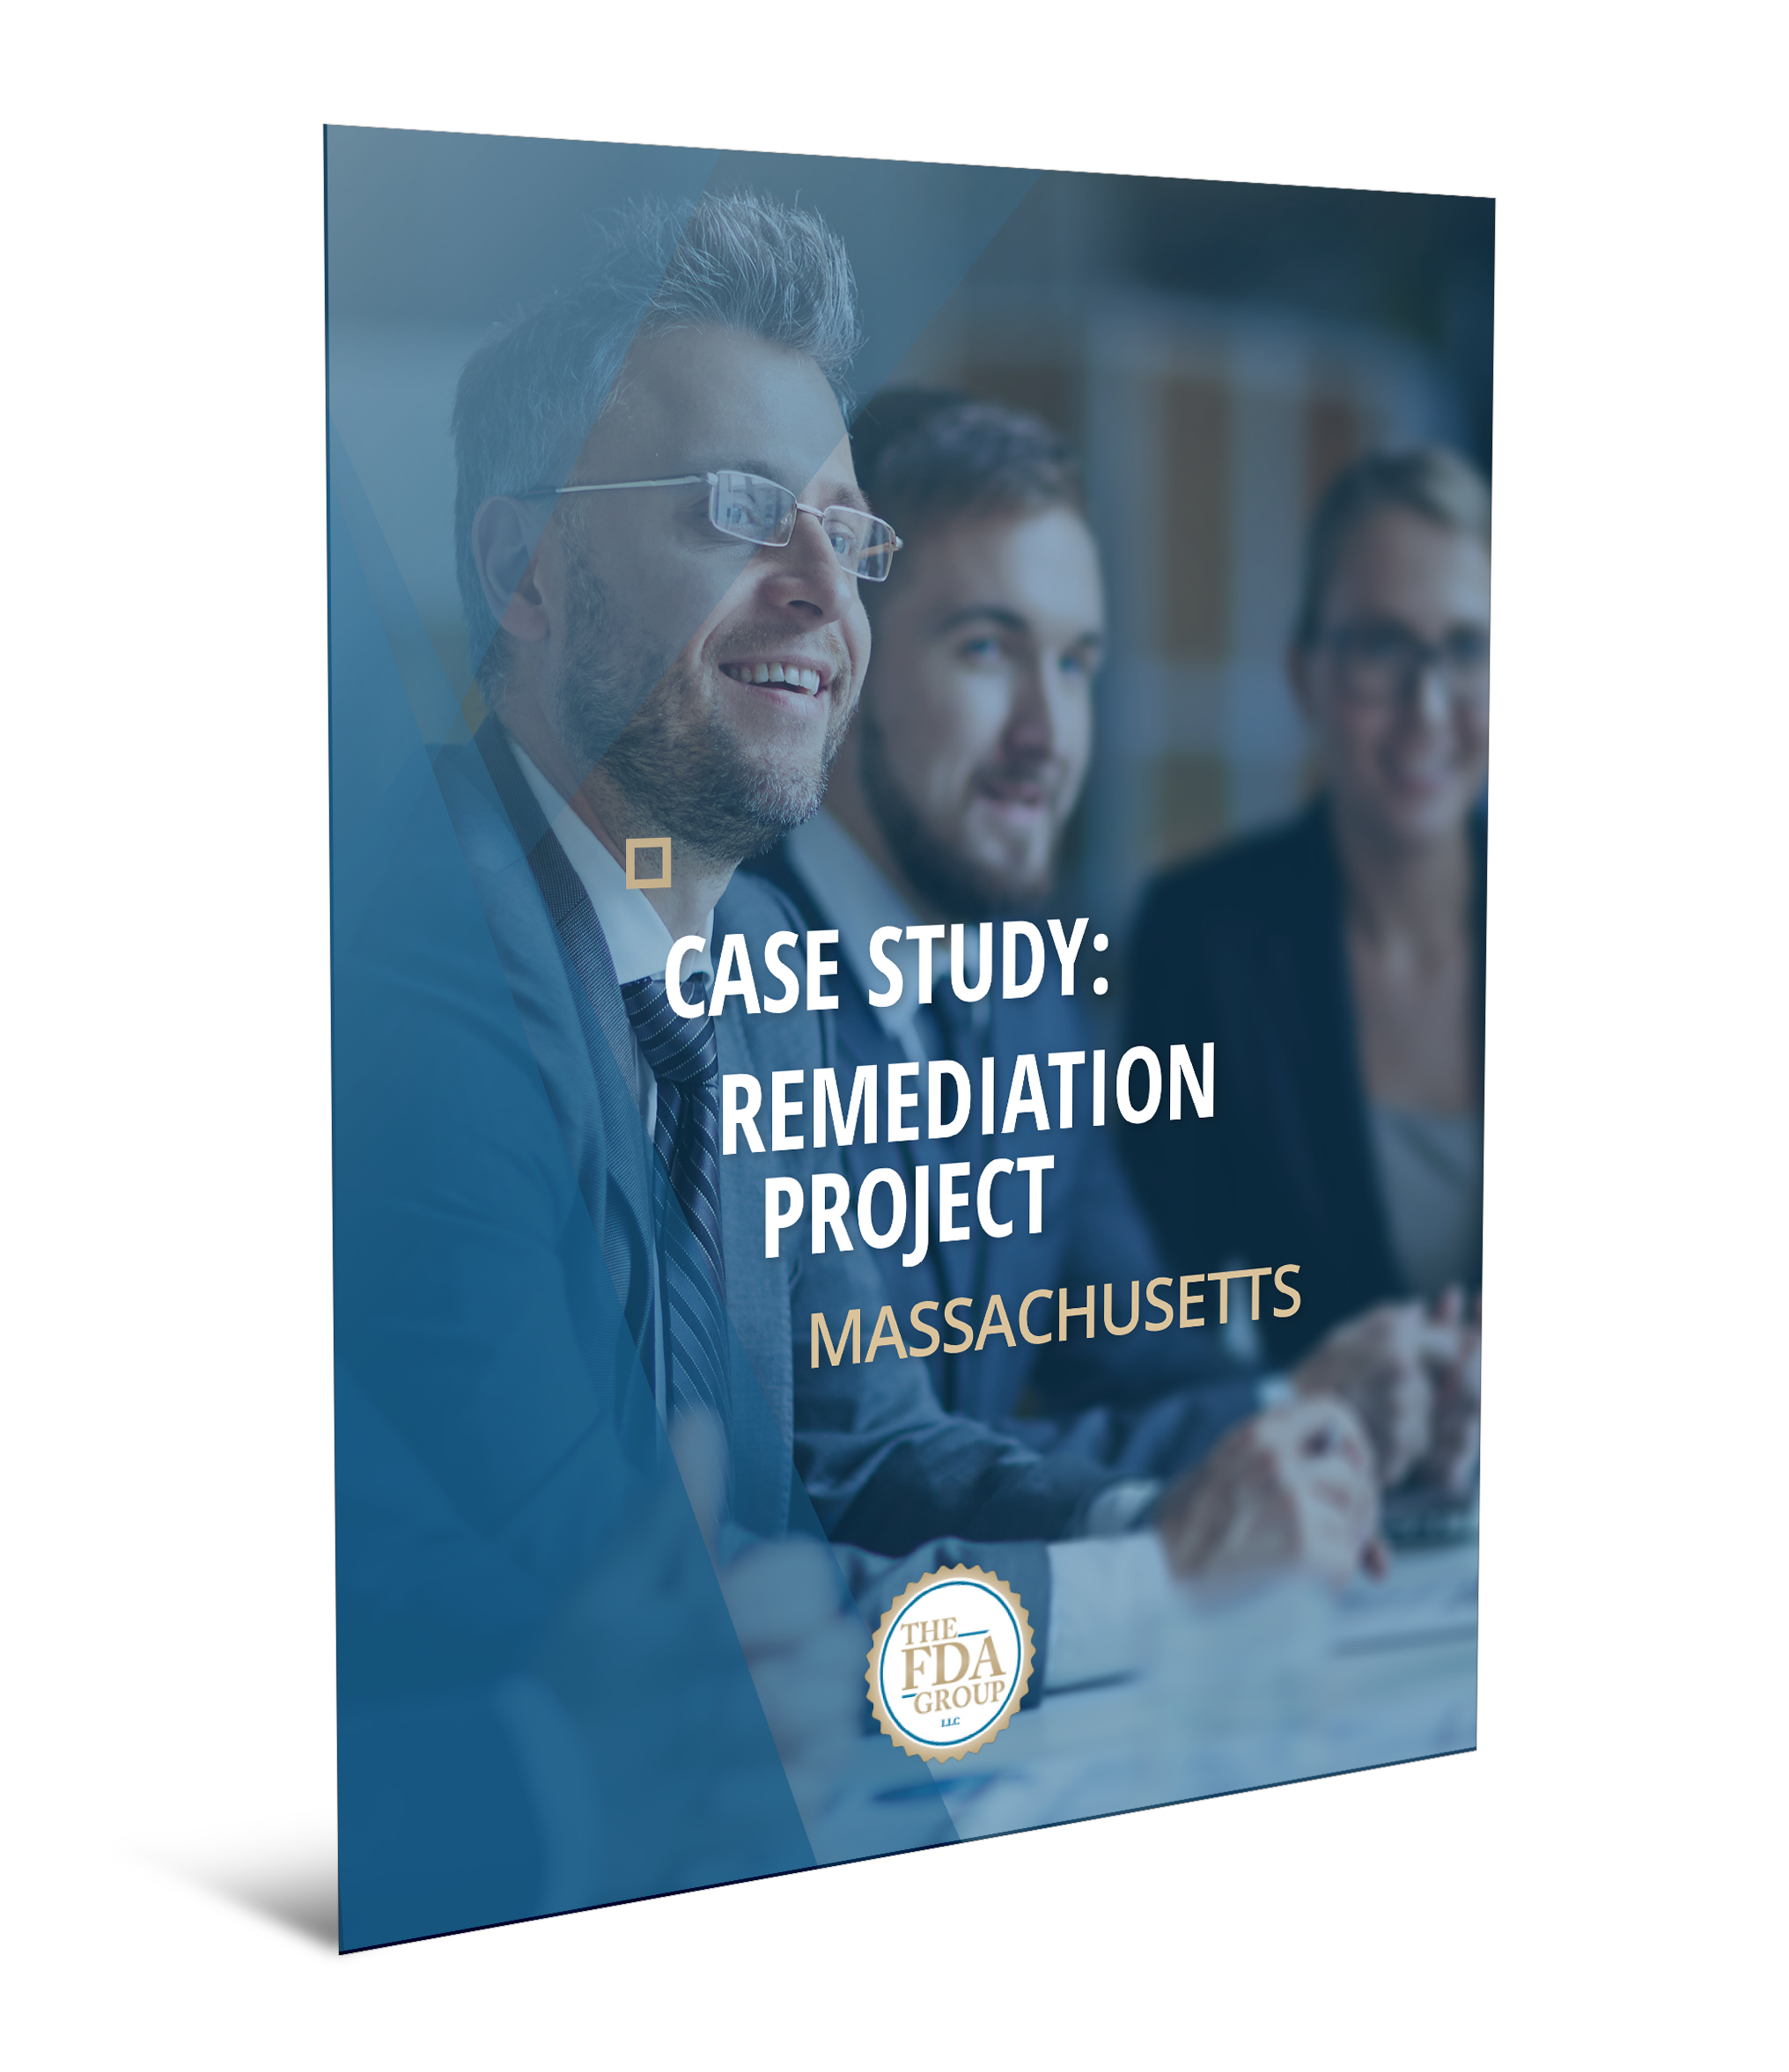 Case Study: Remediation Project – Massachusetts